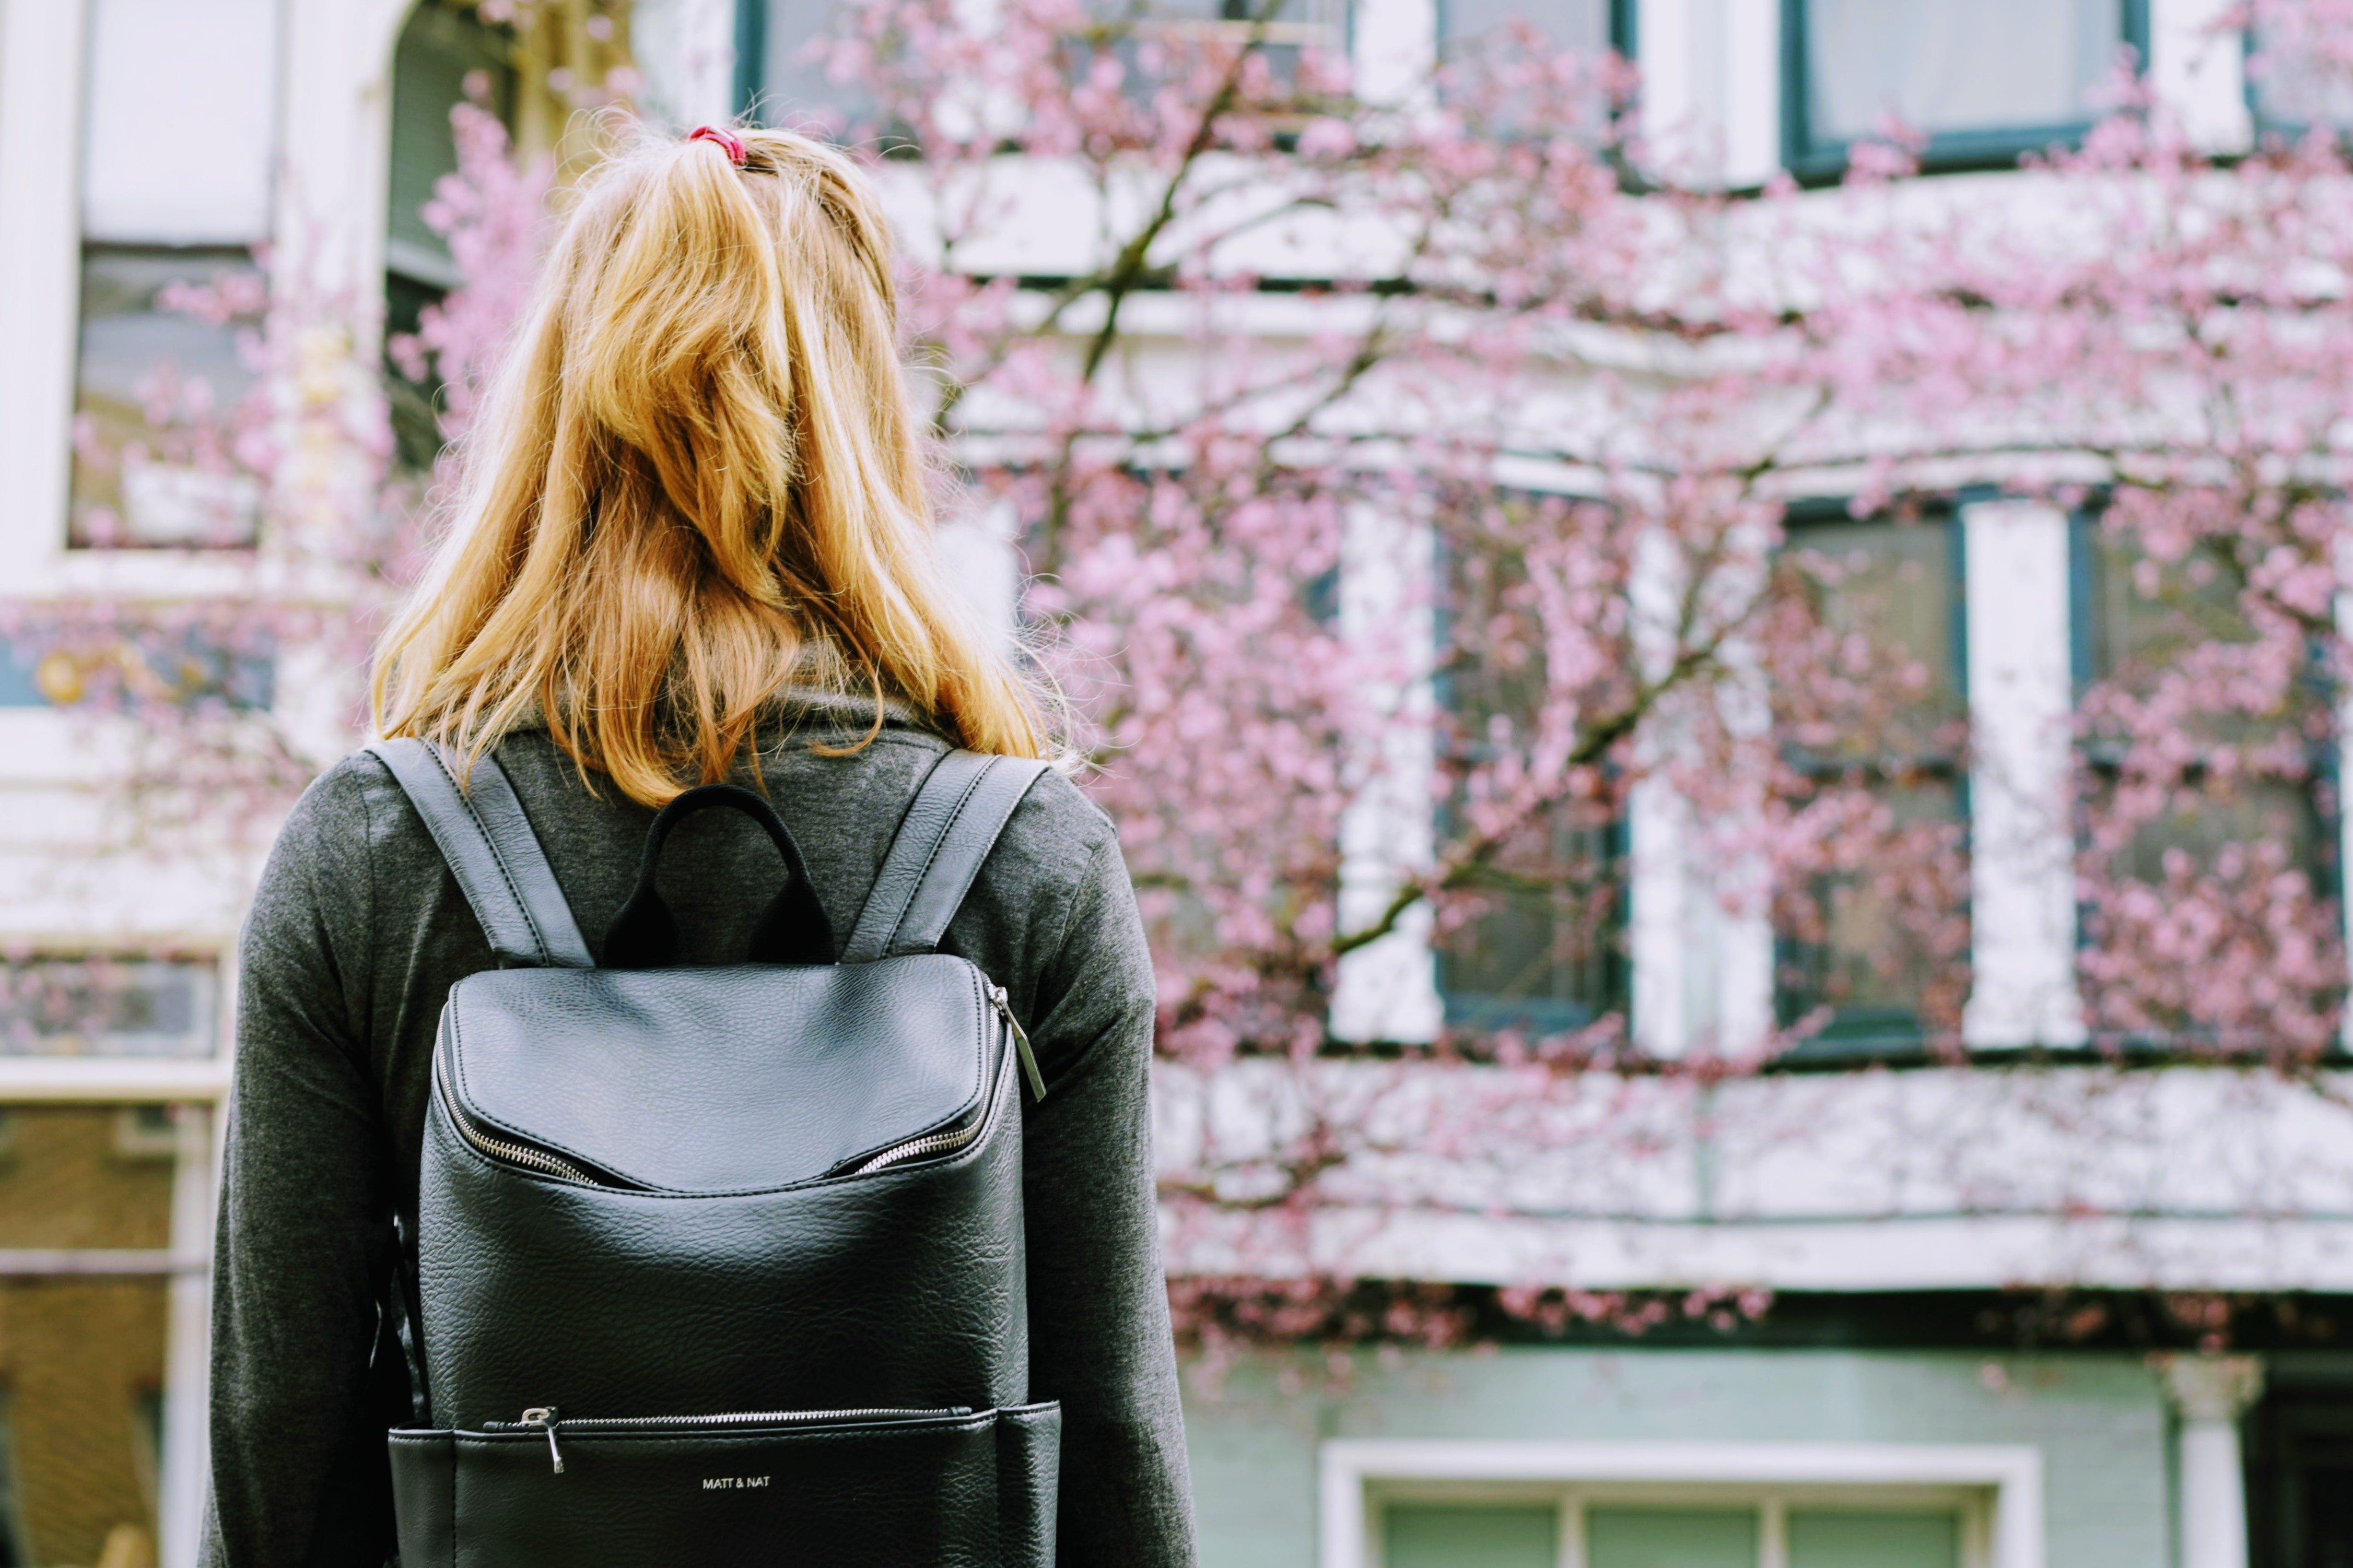 A woman struggling with depression faces a new day on campus